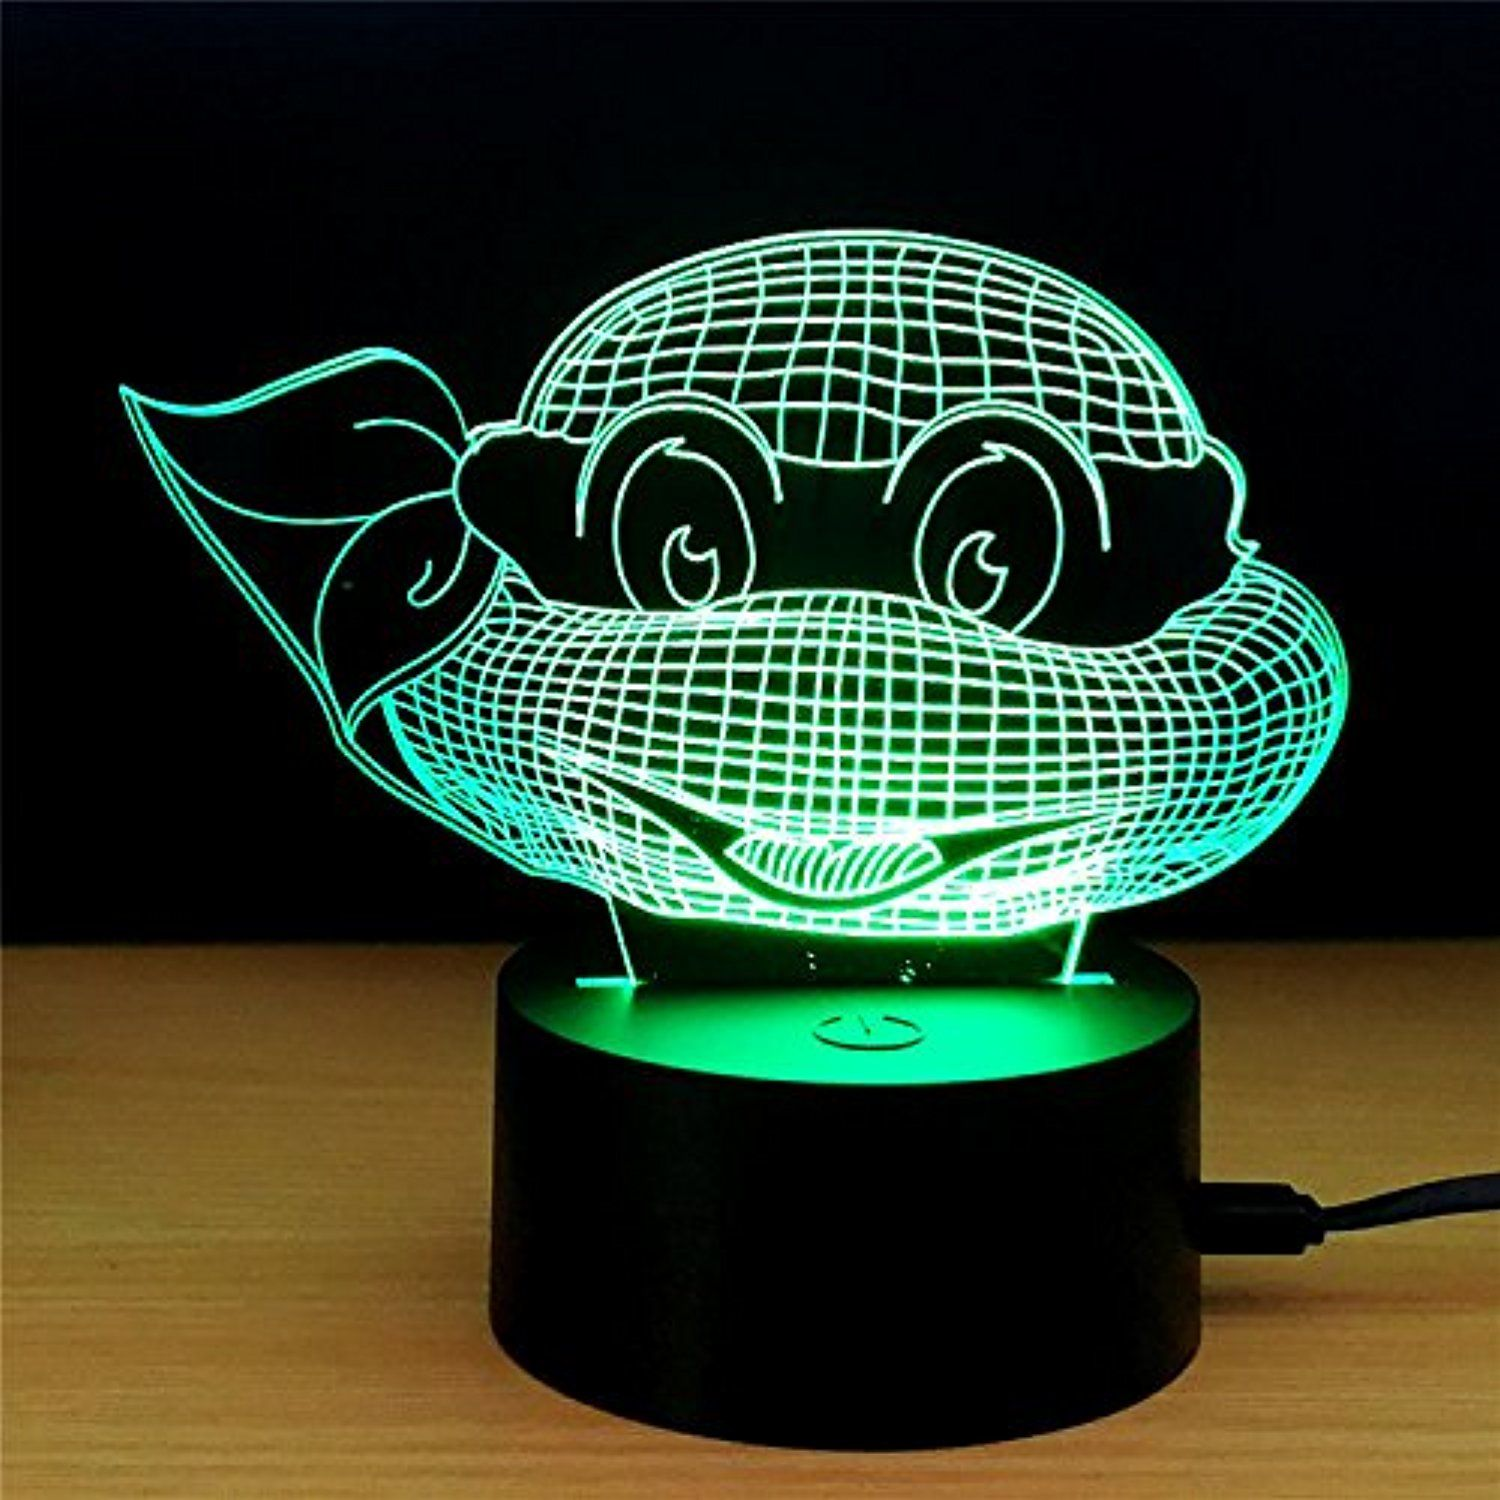 3d Led Illusion Lamp Ninja Turtle 3d Visualization Illusion Led Table Light With Touch Button 7 Colors Change Touch Desk La With Images Night Light Light Table Kids Room